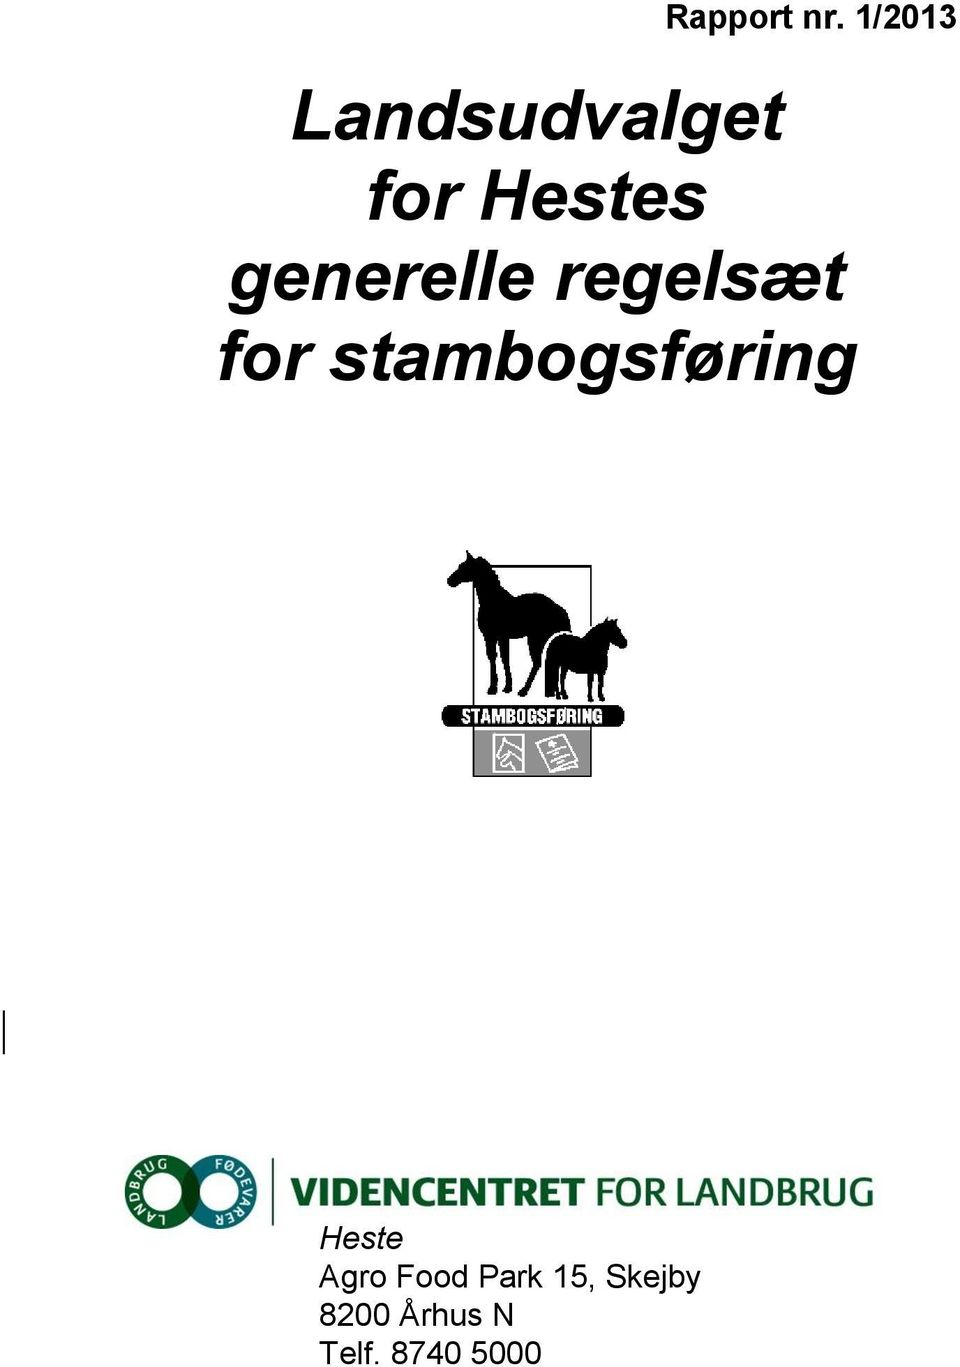 generelle regelsæt for